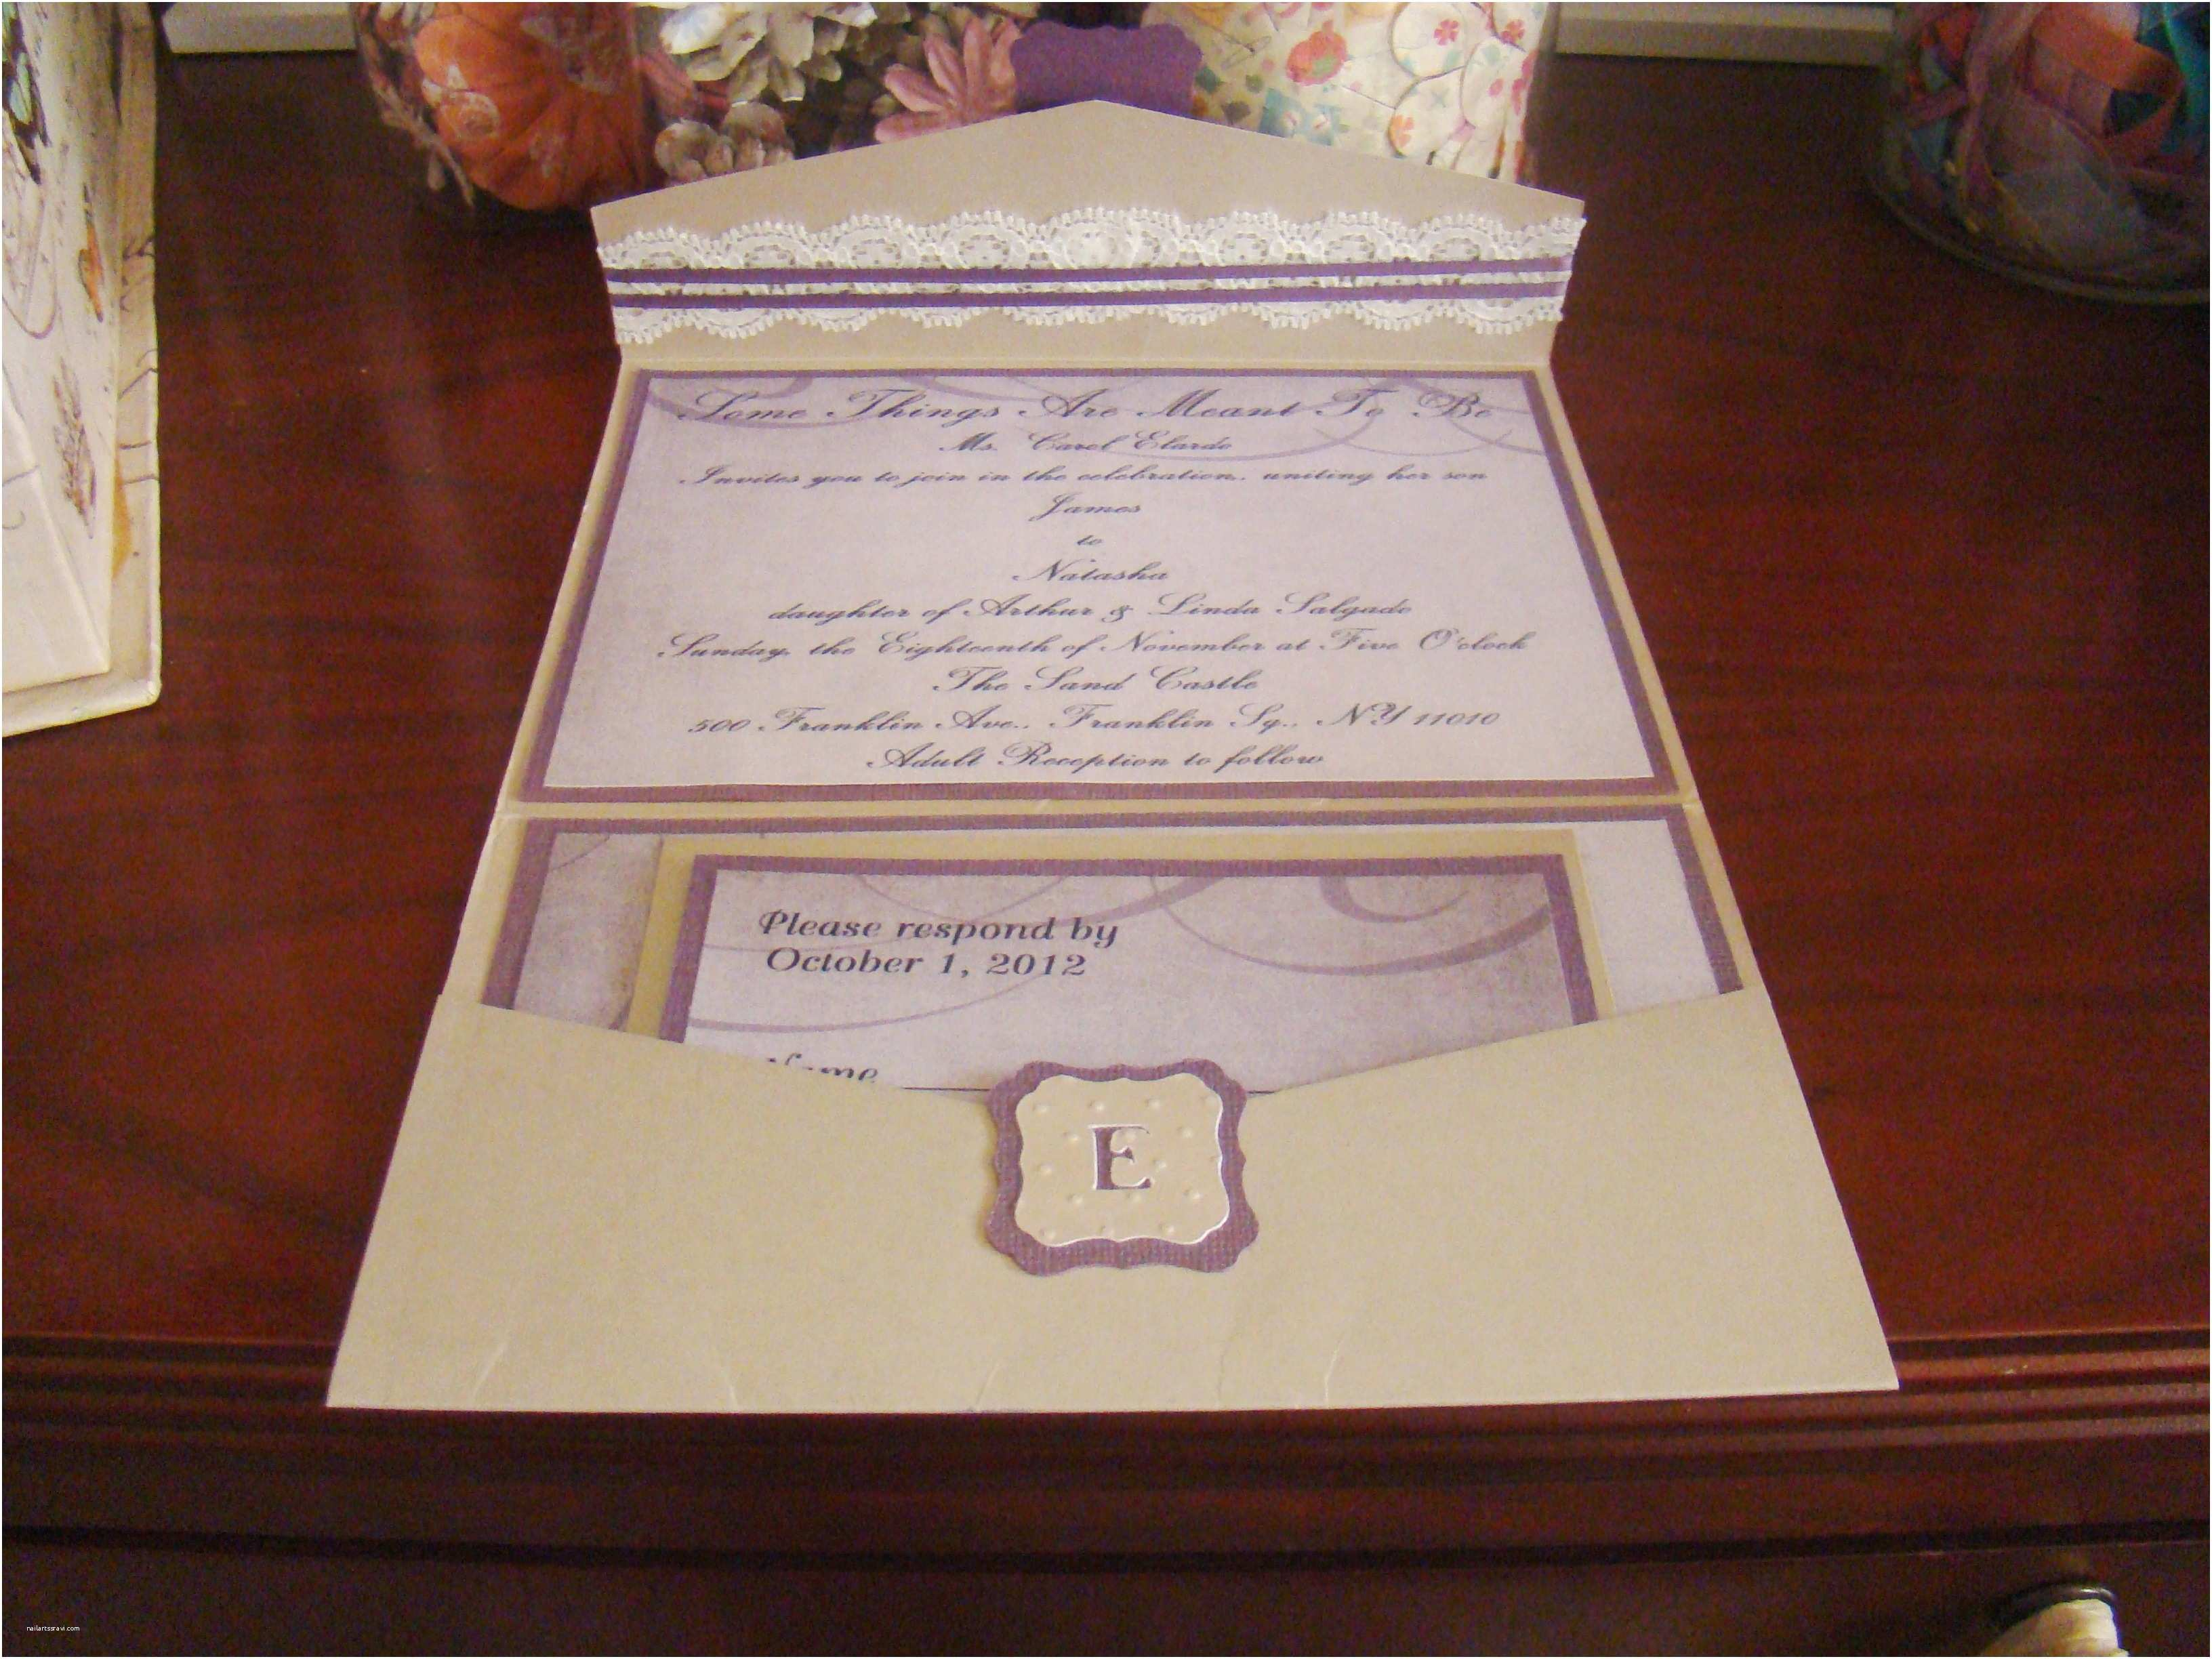 Cricut Wedding Invitations Unique Ideas for Cricut Wedding Invitations Templates